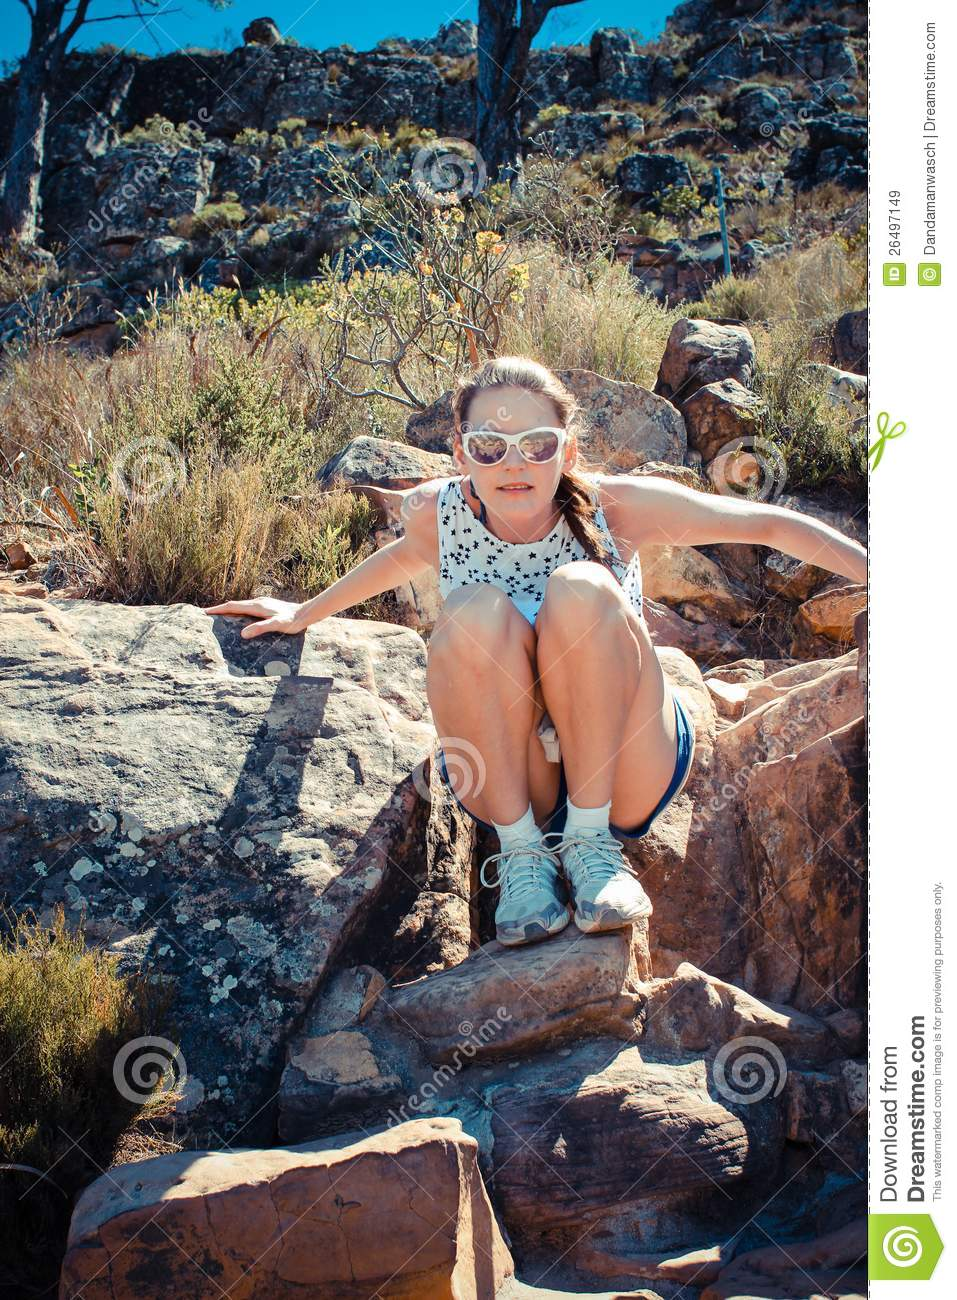 Really wanted girl sitting on rock very